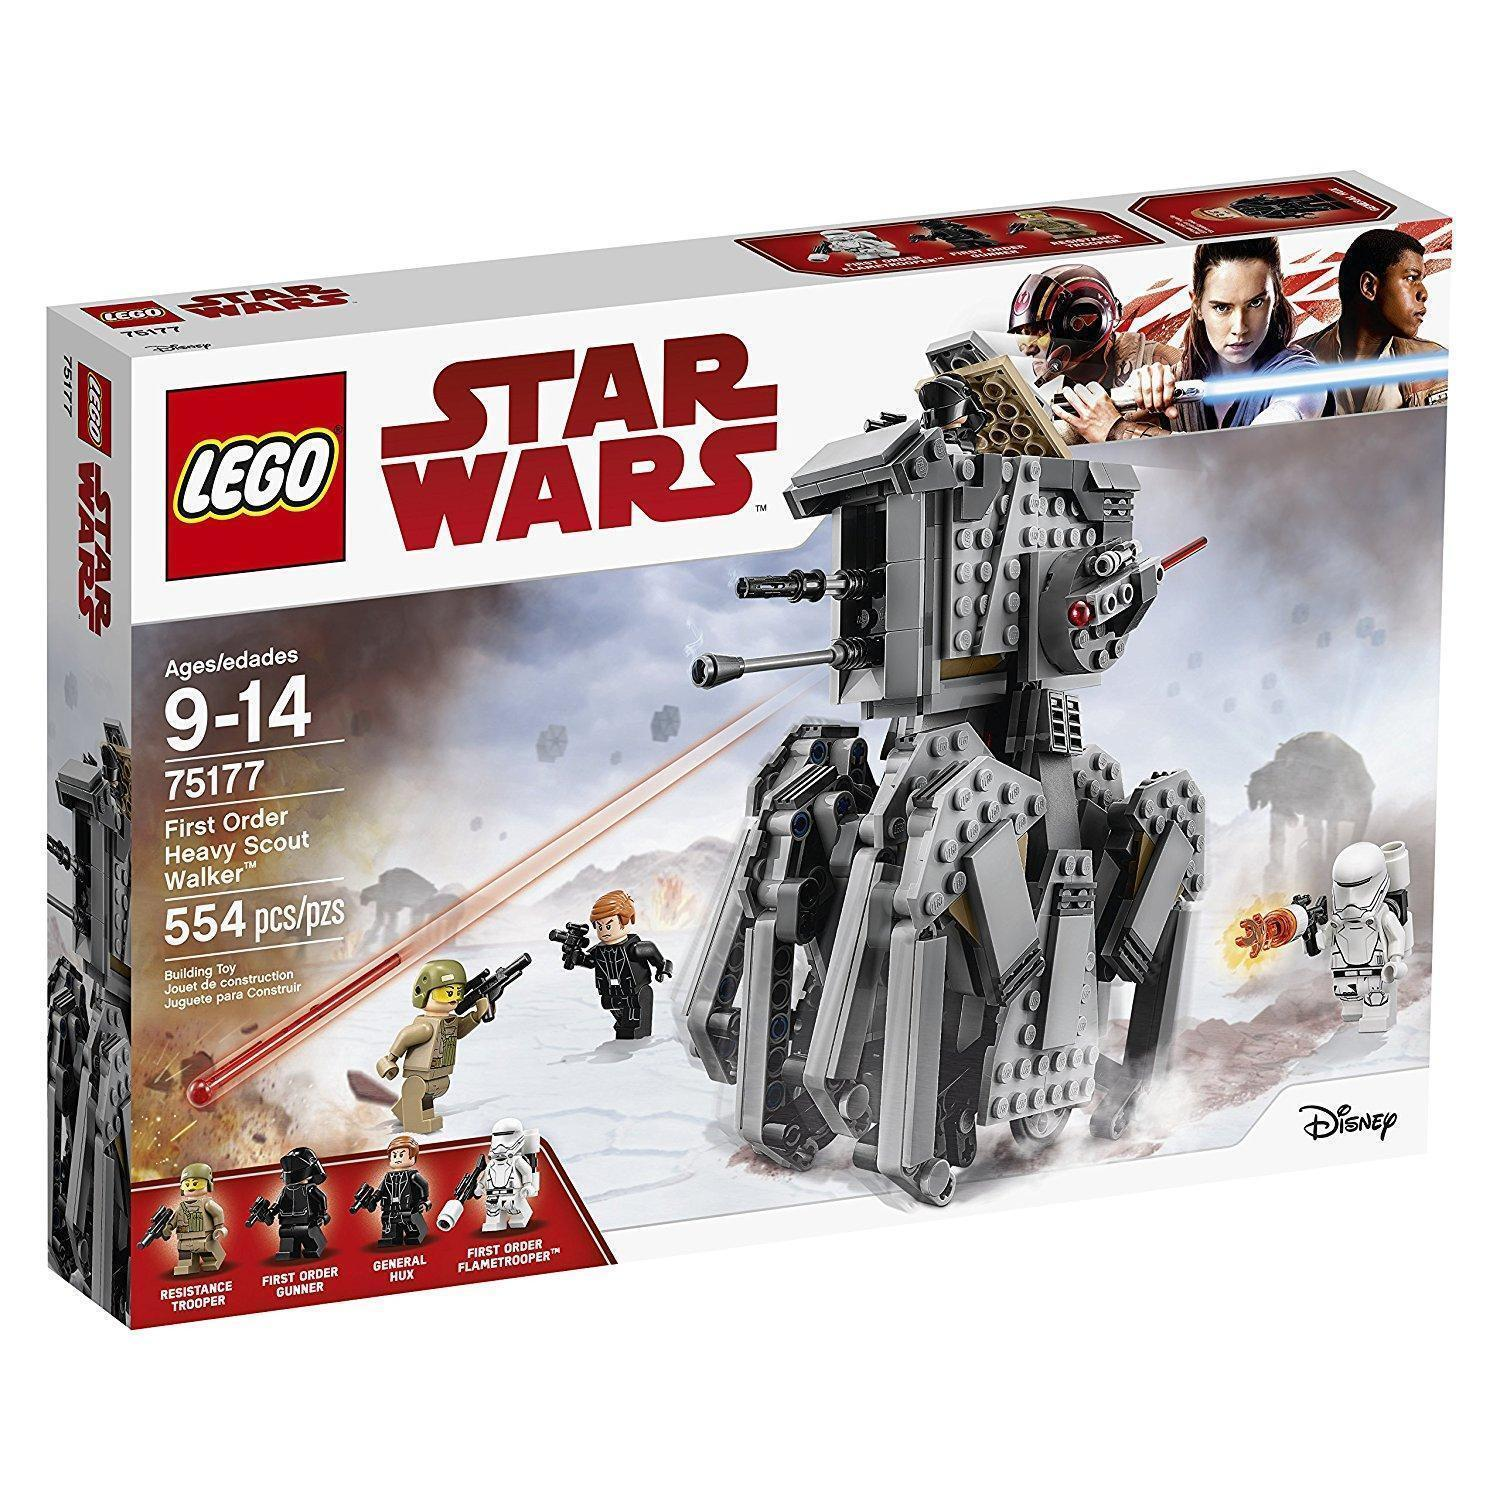 75177 FIRST ORDER HEAVY SCOUT WALKER star wars lego NEW legos set HUX tfa